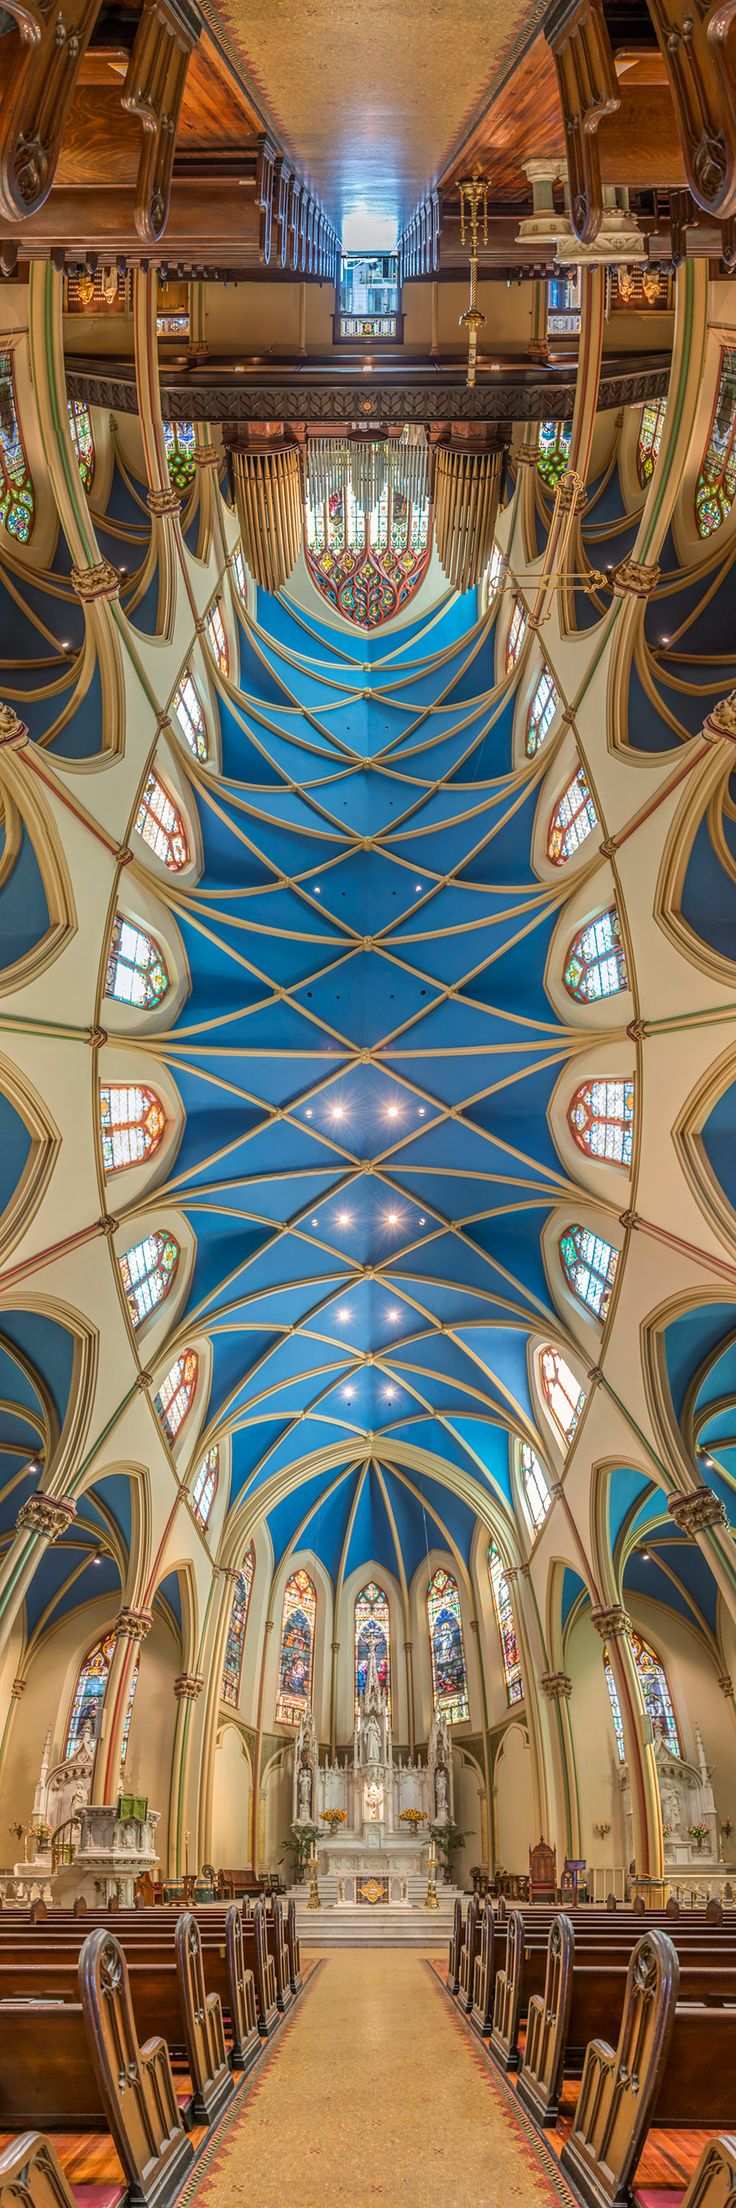 """Richard Silver ~ """"St. Monica's Church"""" from his series of vertical panoramic photos of churches of New York"""